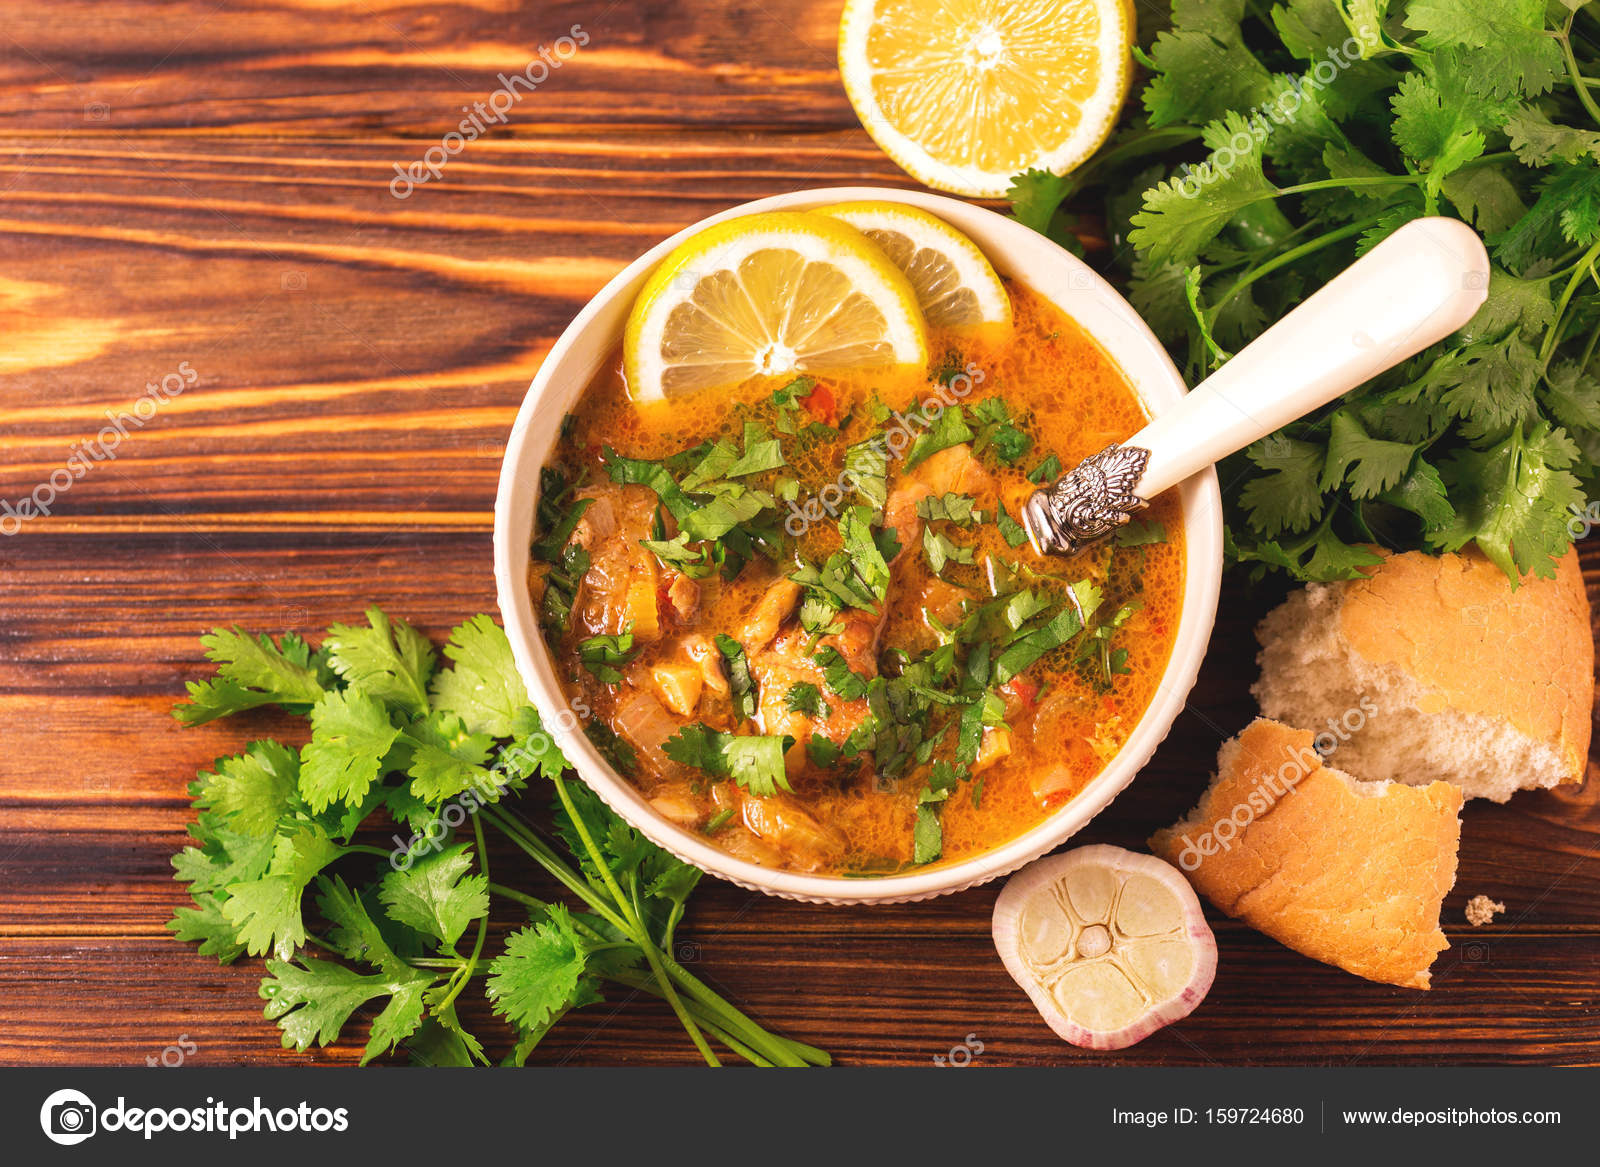 Jewish Wedding And Holyday Yemenite Beef Soup Marak Temani Stock